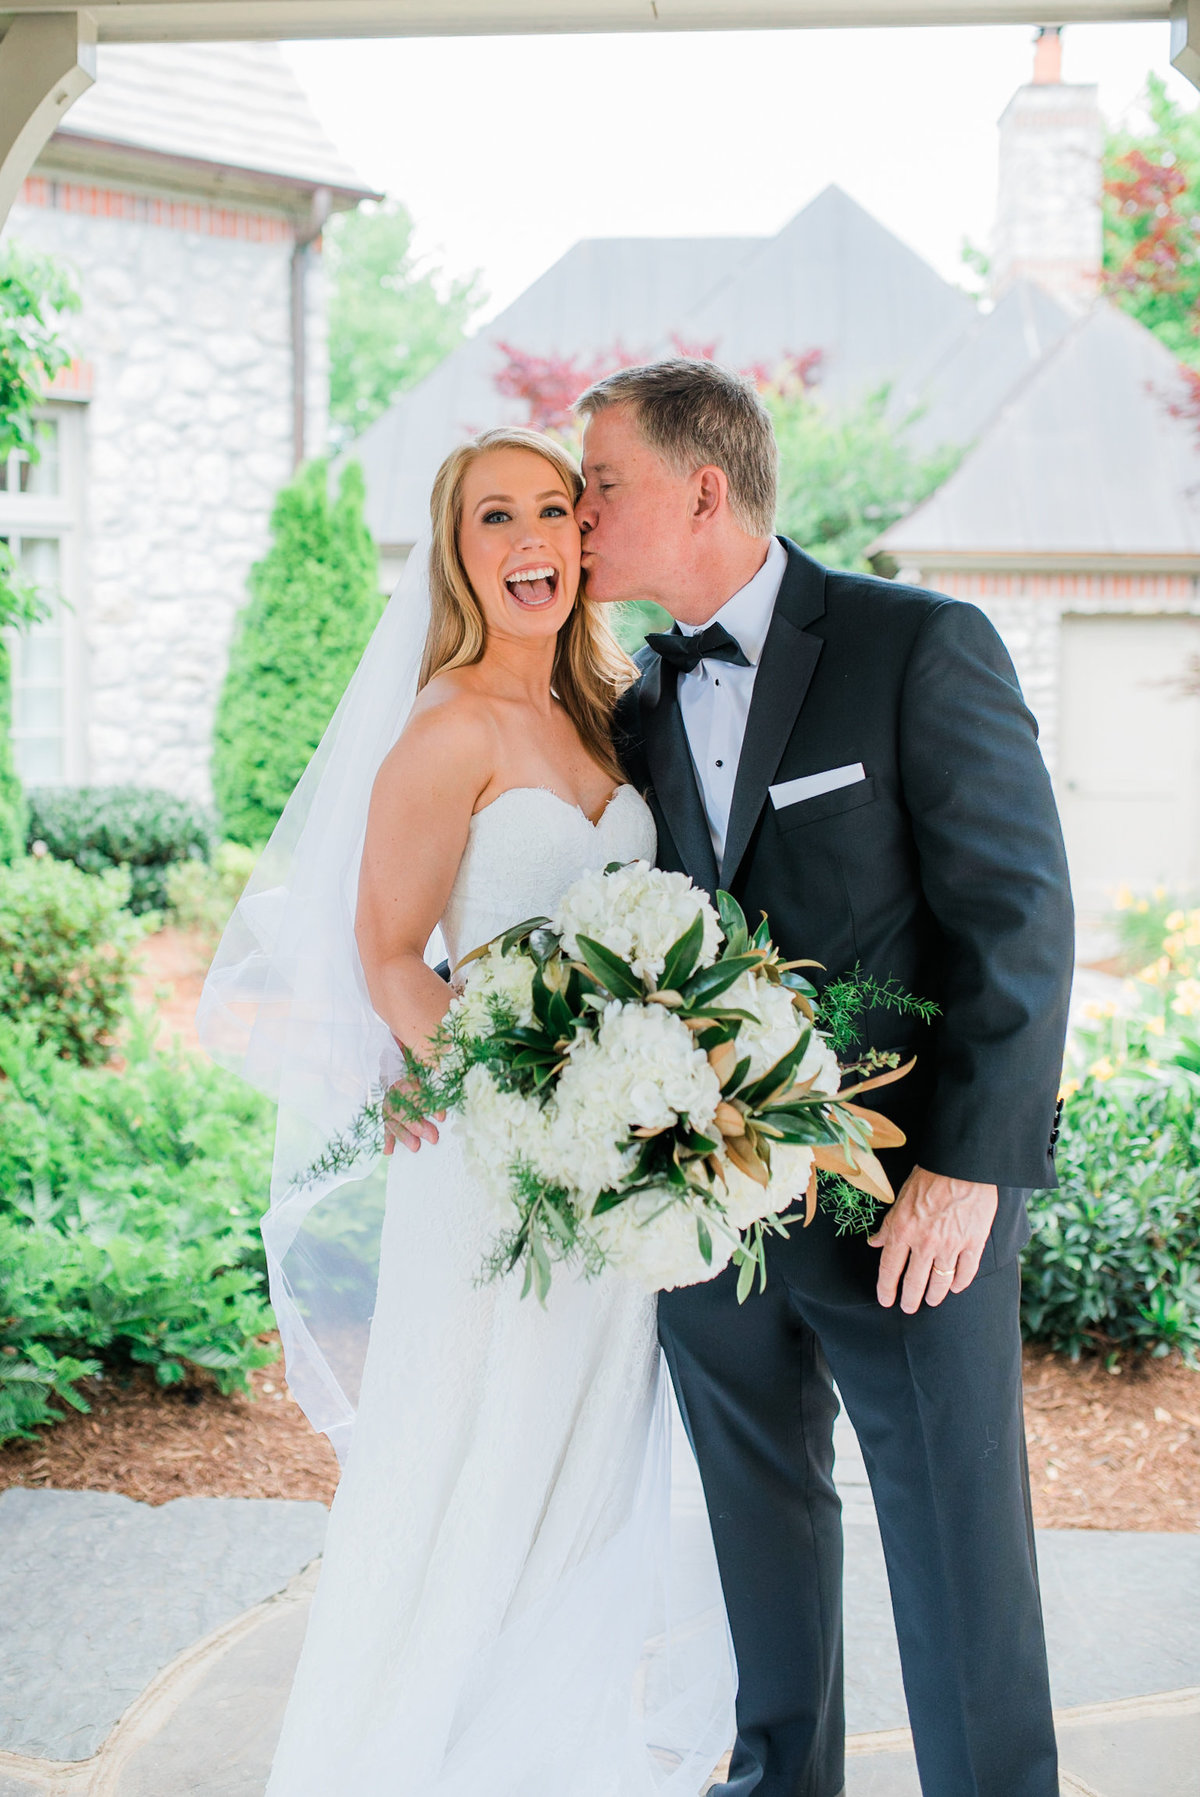 StevenandChandler|CharlotteCountryClubWedding9